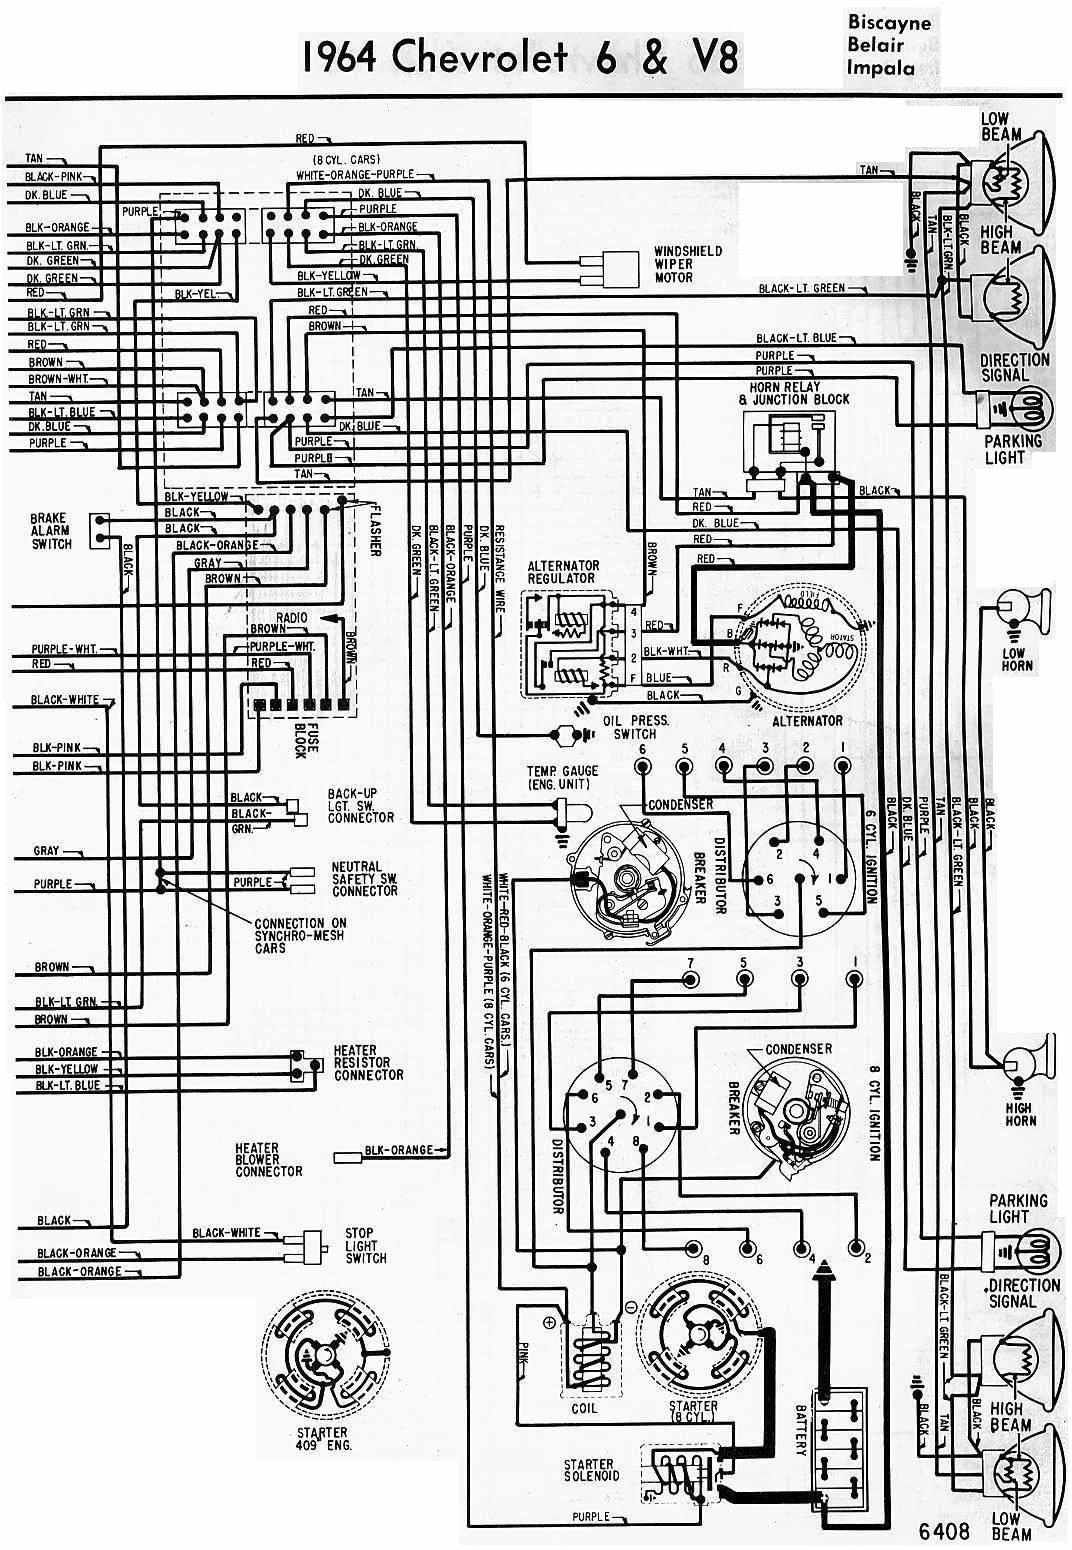 Wire Diagram For Oil Pressure Switch Not Lossing Wiring Field Electrical Of 1964 Chevrolet 6 And V8 All Compressor